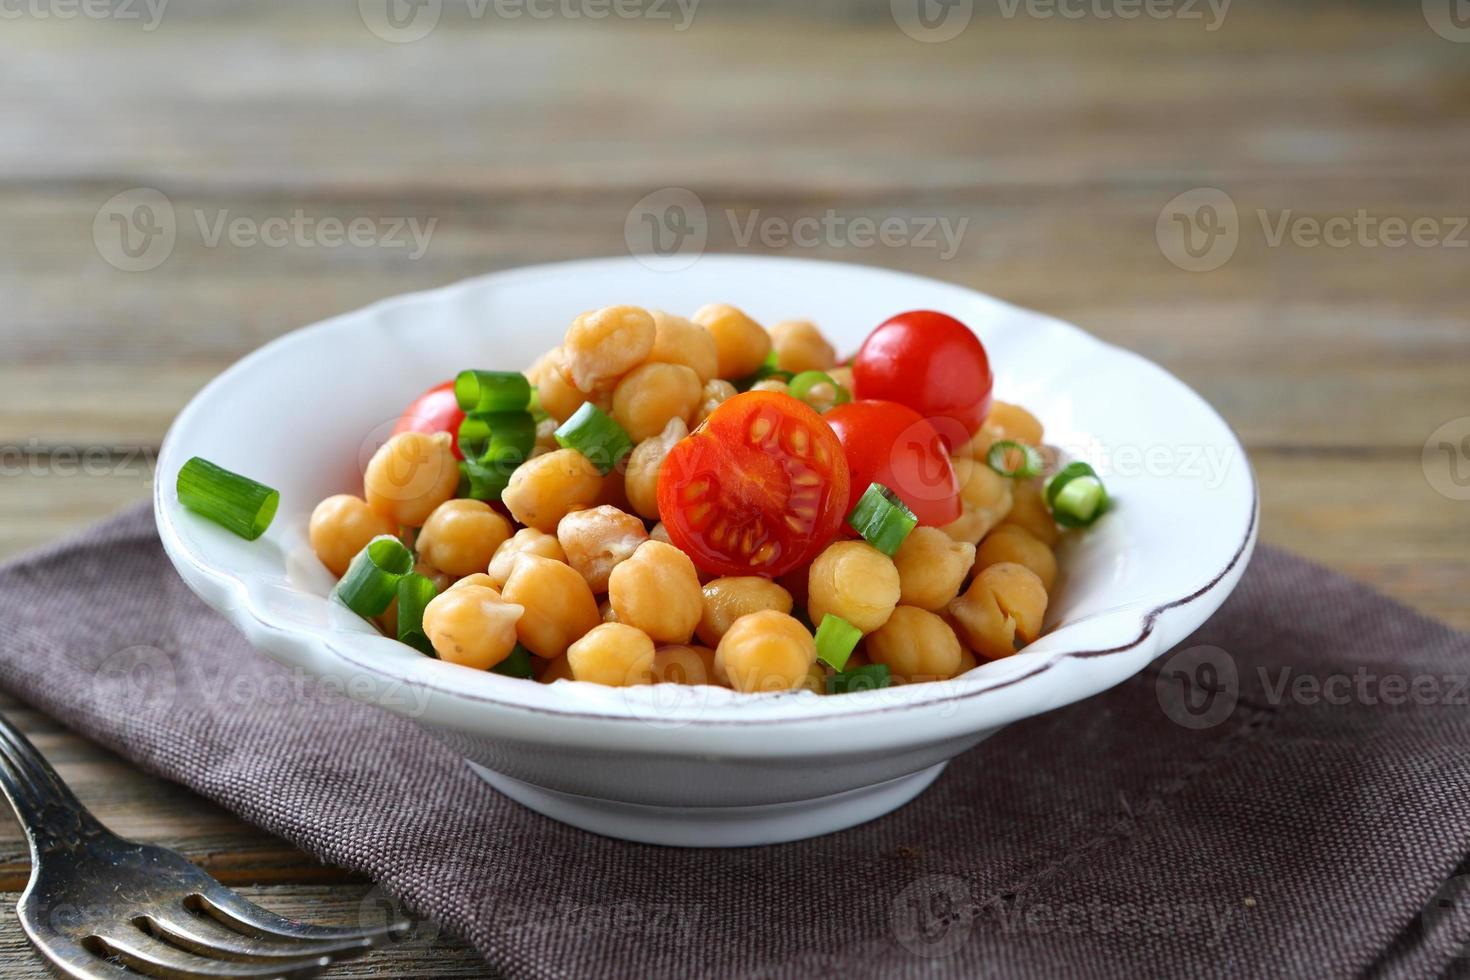 Chickpeas with vegetables in a bowl photo